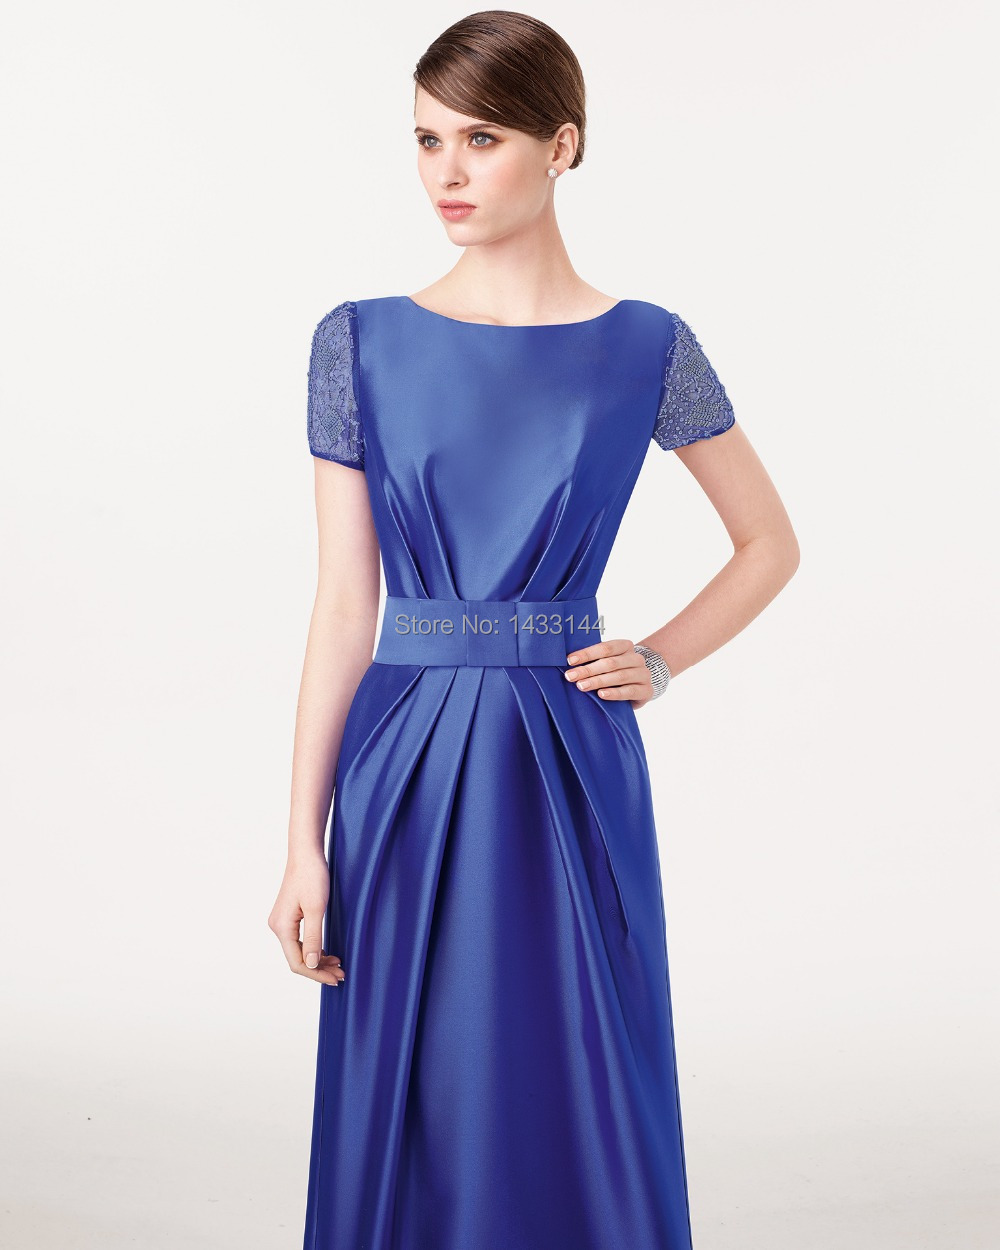 New Arrival 2017 Elegant Royal Blue Evening Dresses Beads Cap Sleeves Long Formal Wedding Guest Party Prom Gowns Vestido Noite In From